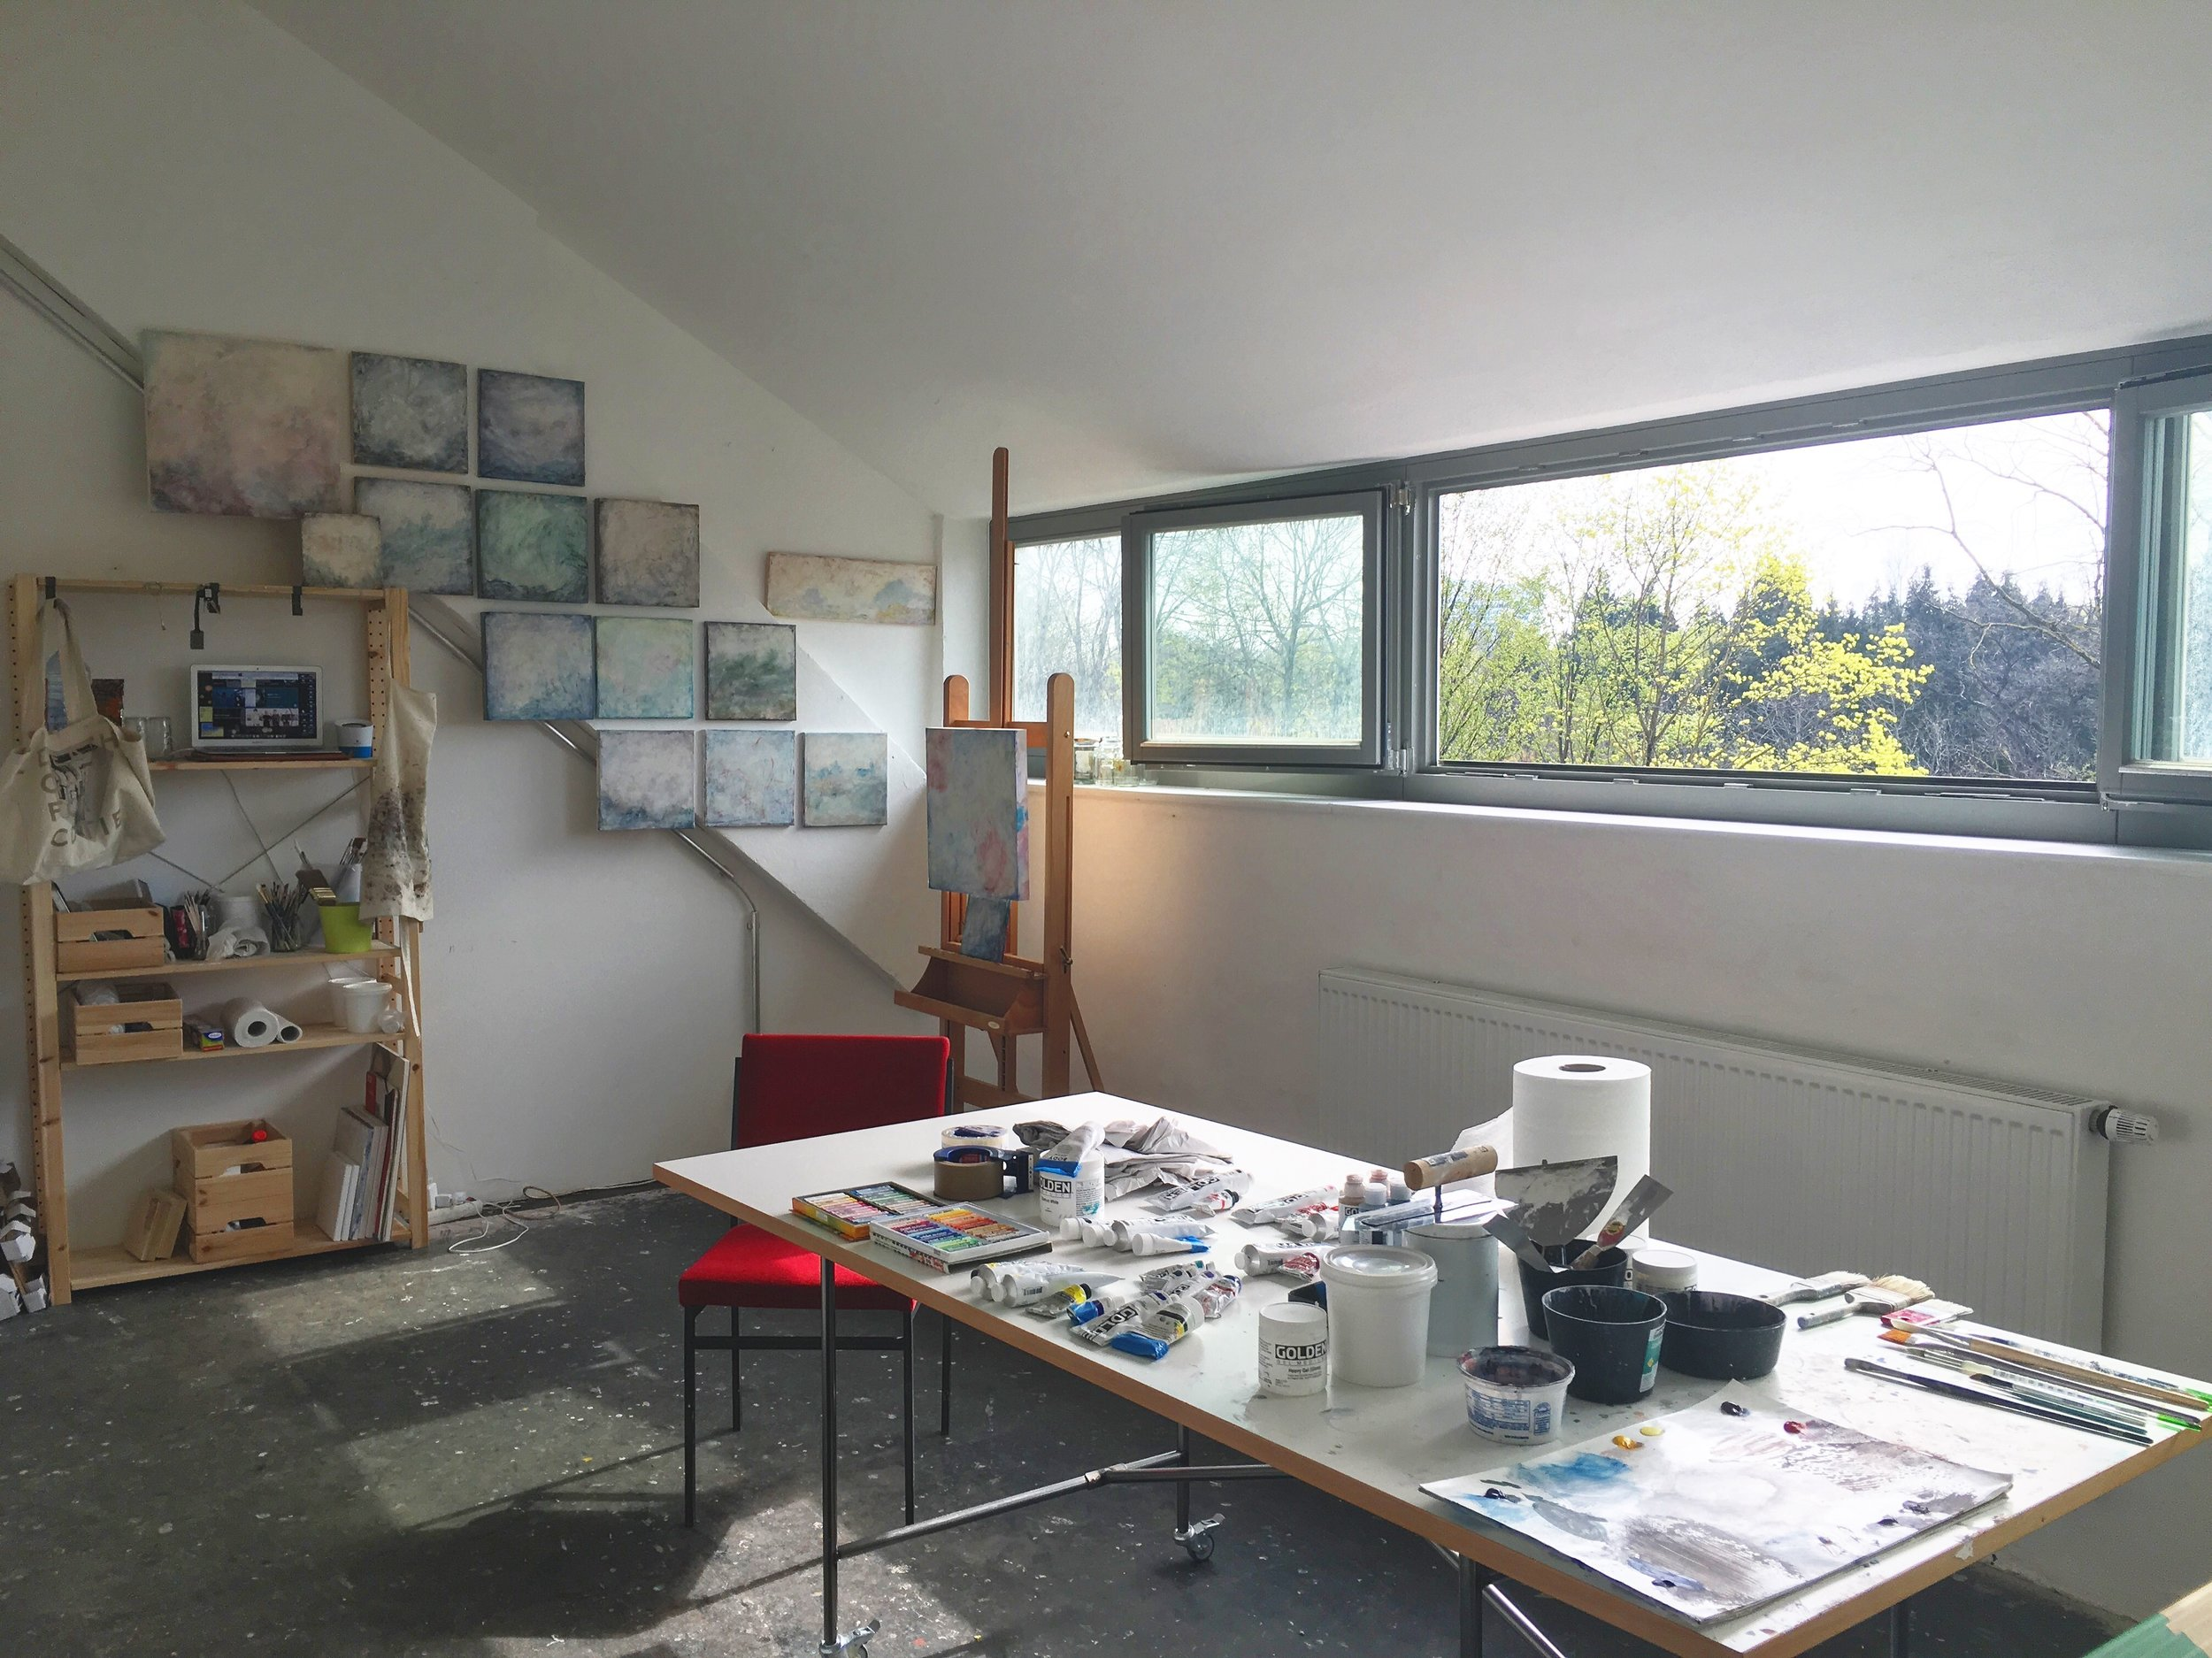 My guest artist studio in the Municipal studio house at Domagkpark. // February to April 2016 // ©2016 Kelli Thompson